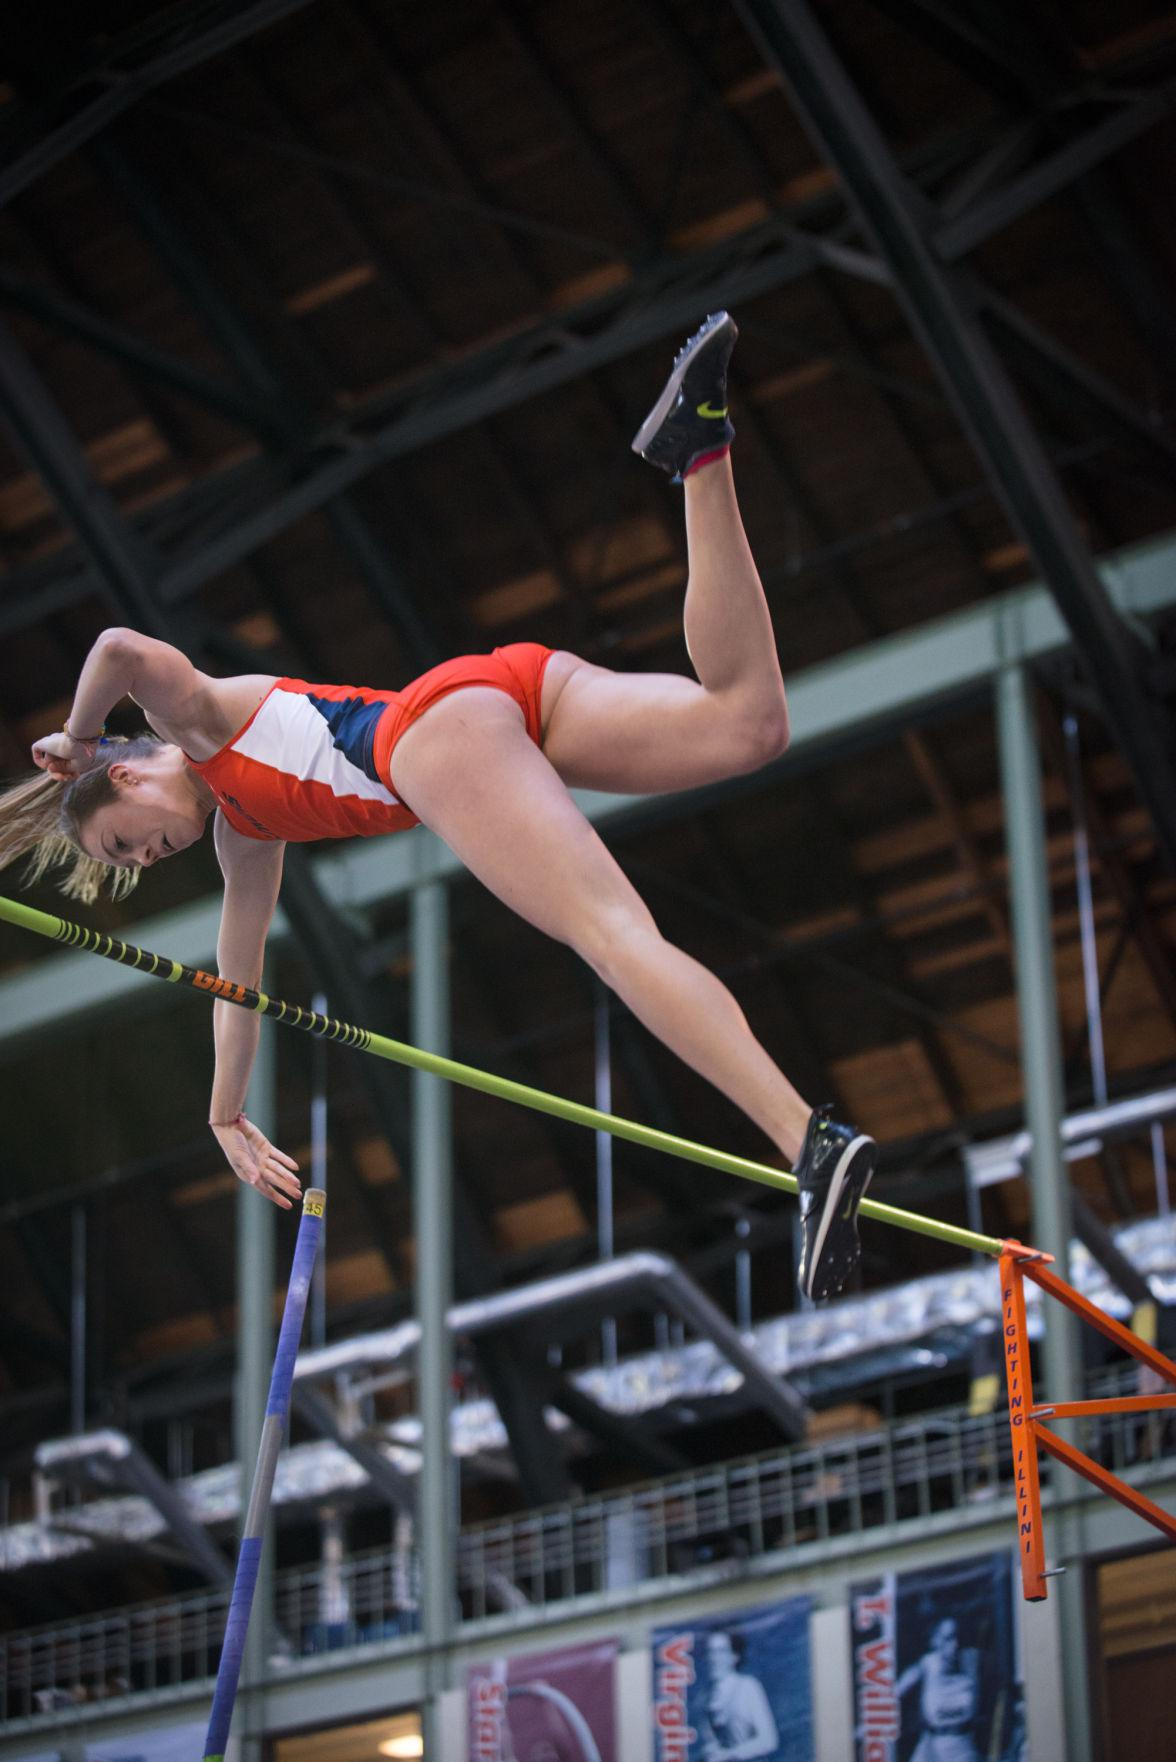 Illinois' Stephanie Richartz releases the pole as she lifts past the bar to break her previous record with a height of 4.38 meters.